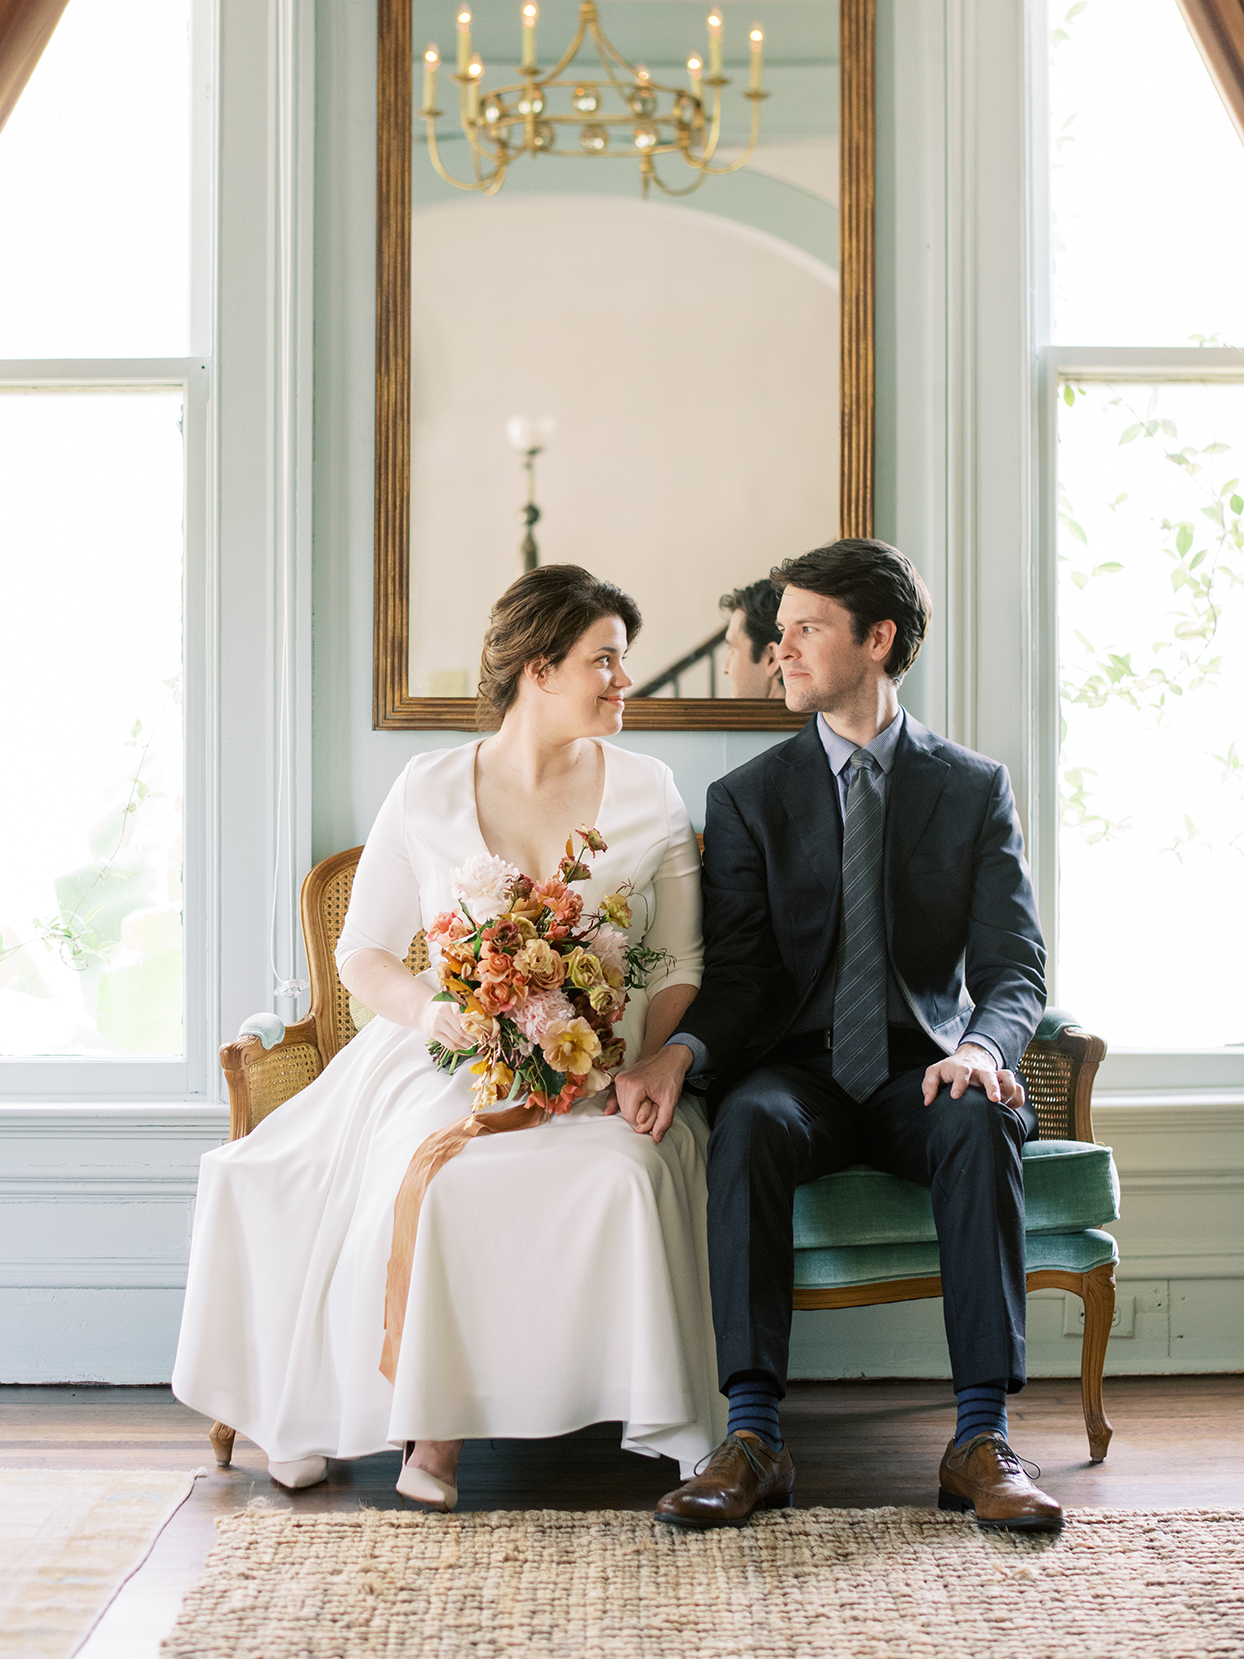 elizabeth scott wedding couple sitting in antique chairs by window